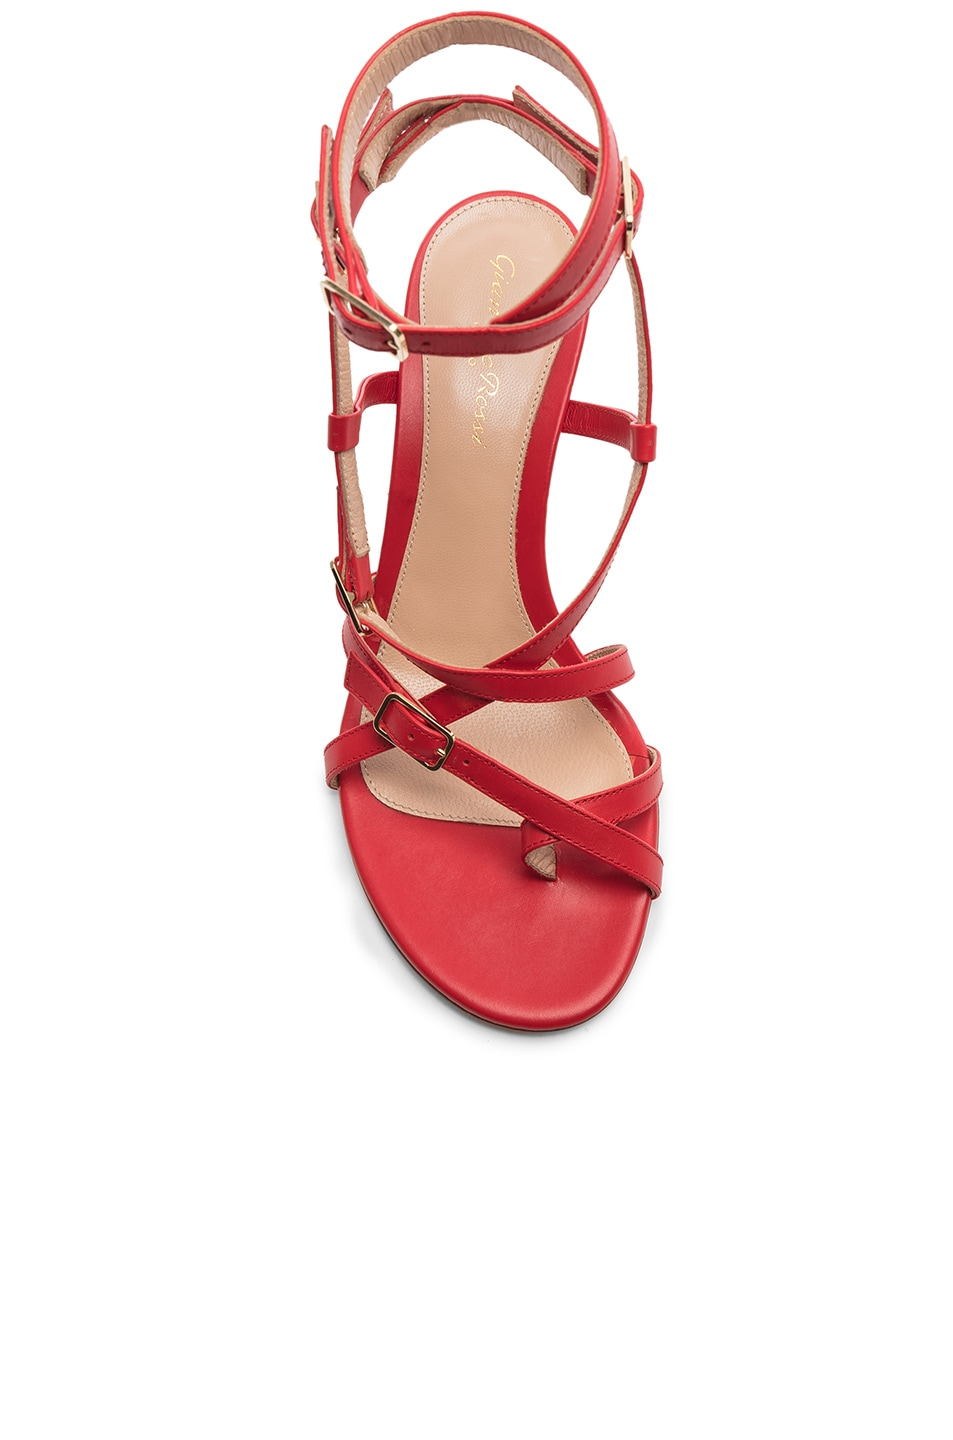 Image 4 of Gianvito Rossi Cory Buckle Strappy Heel in Tabasco Red